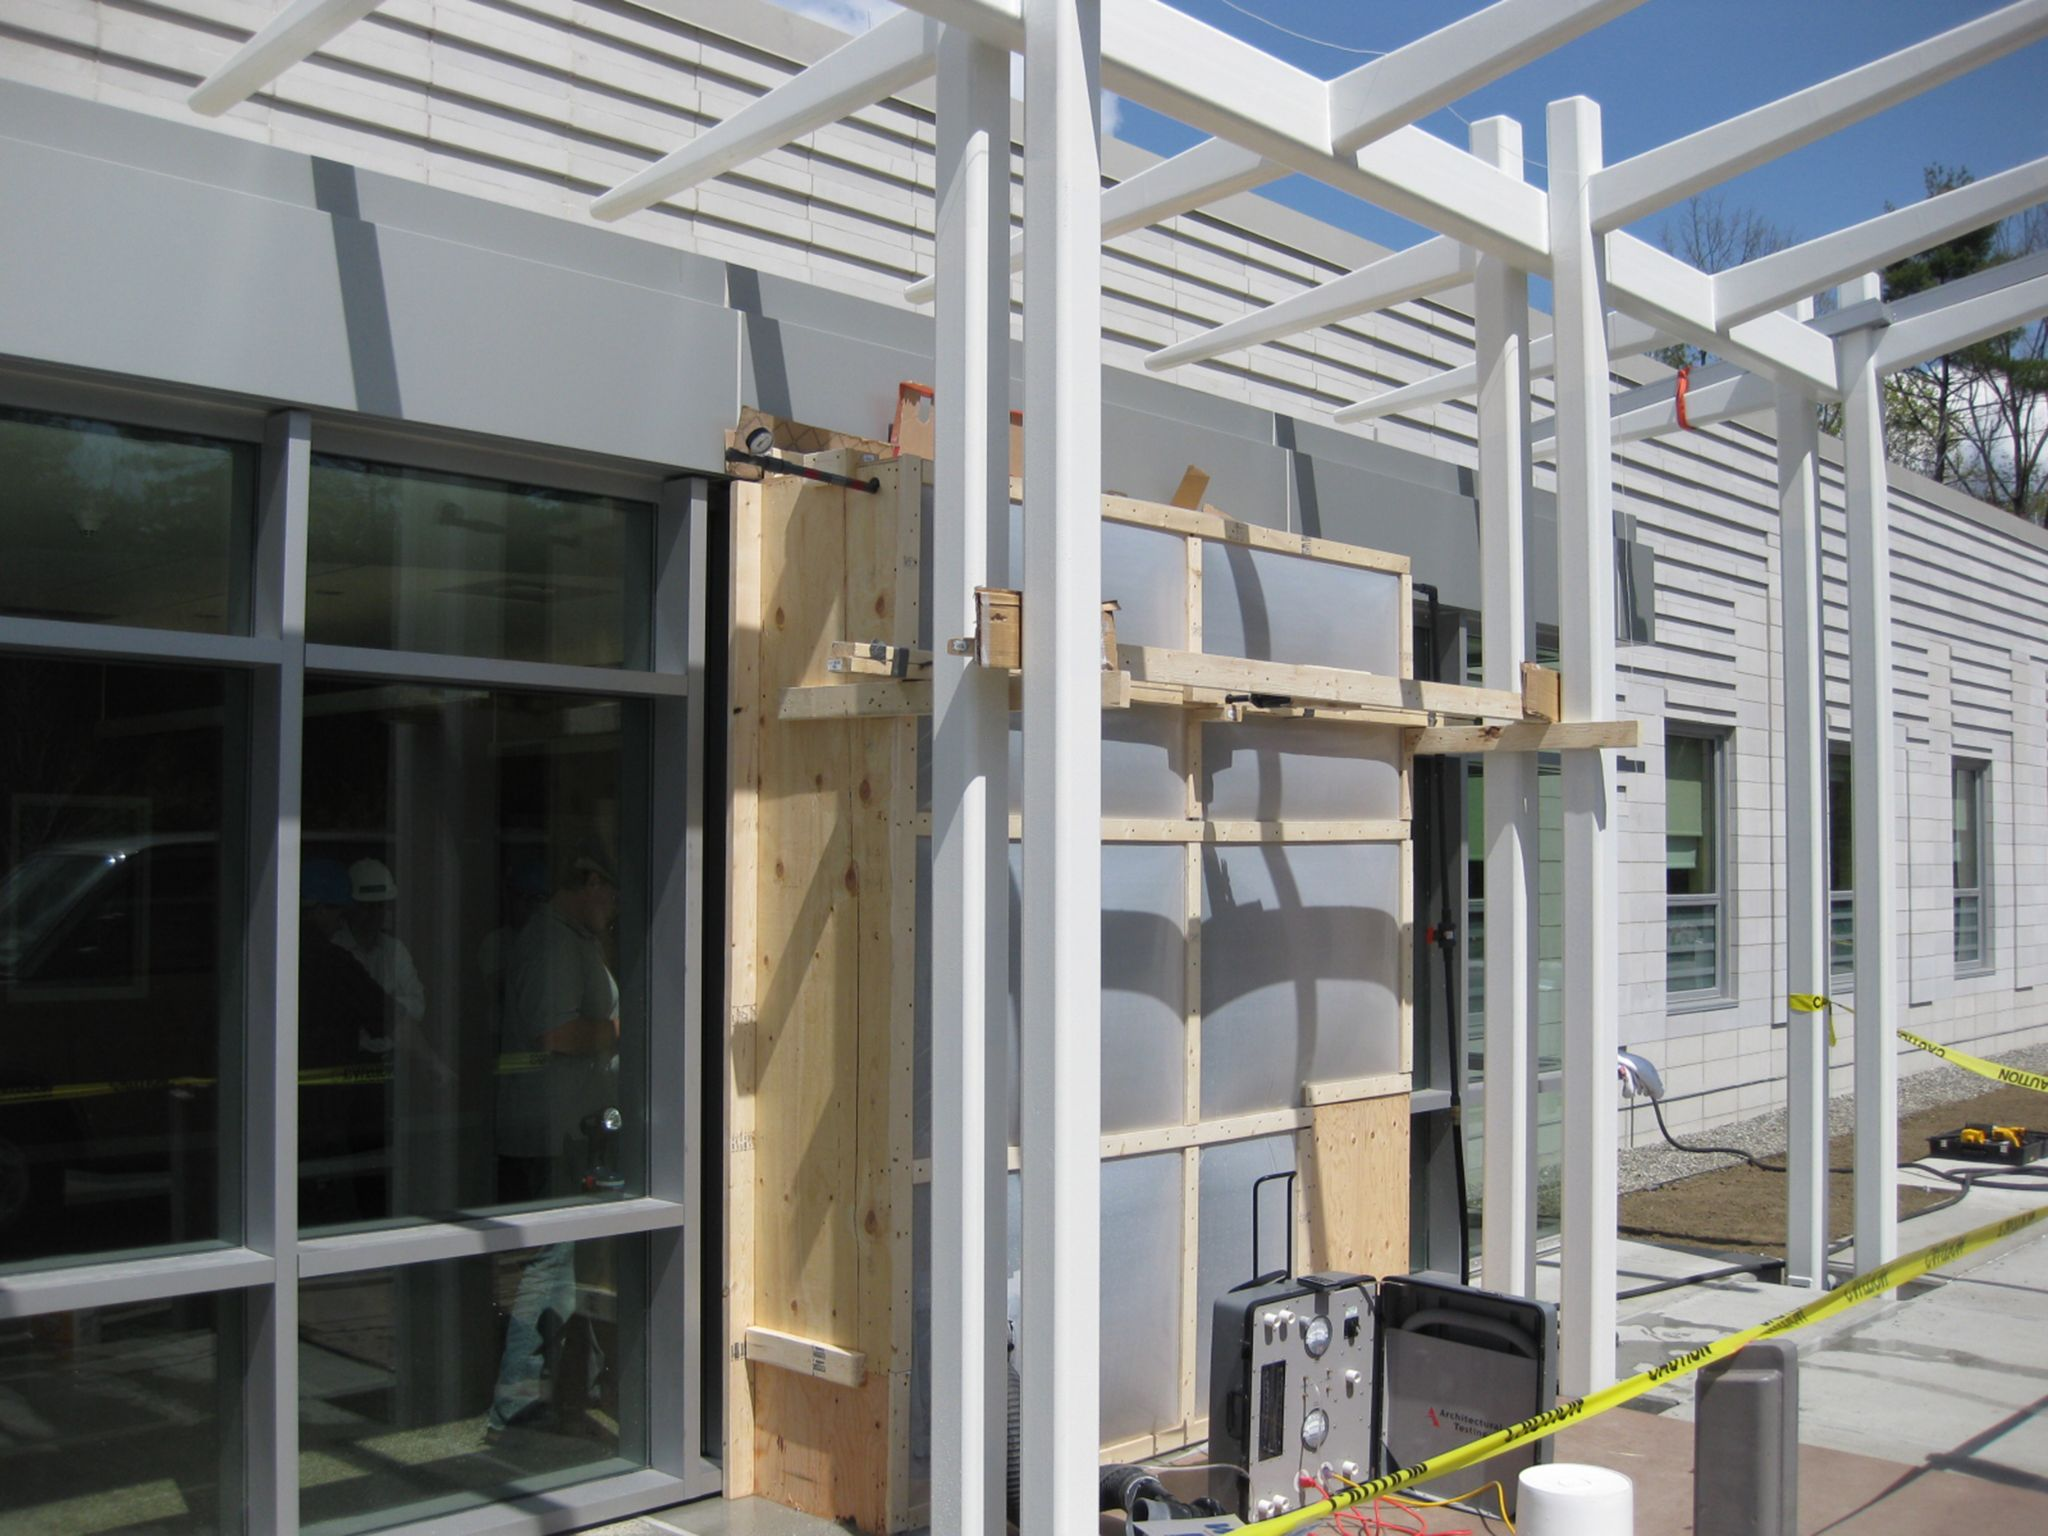 Testing Glazing in the Field: Specifying procedures now avoids ...